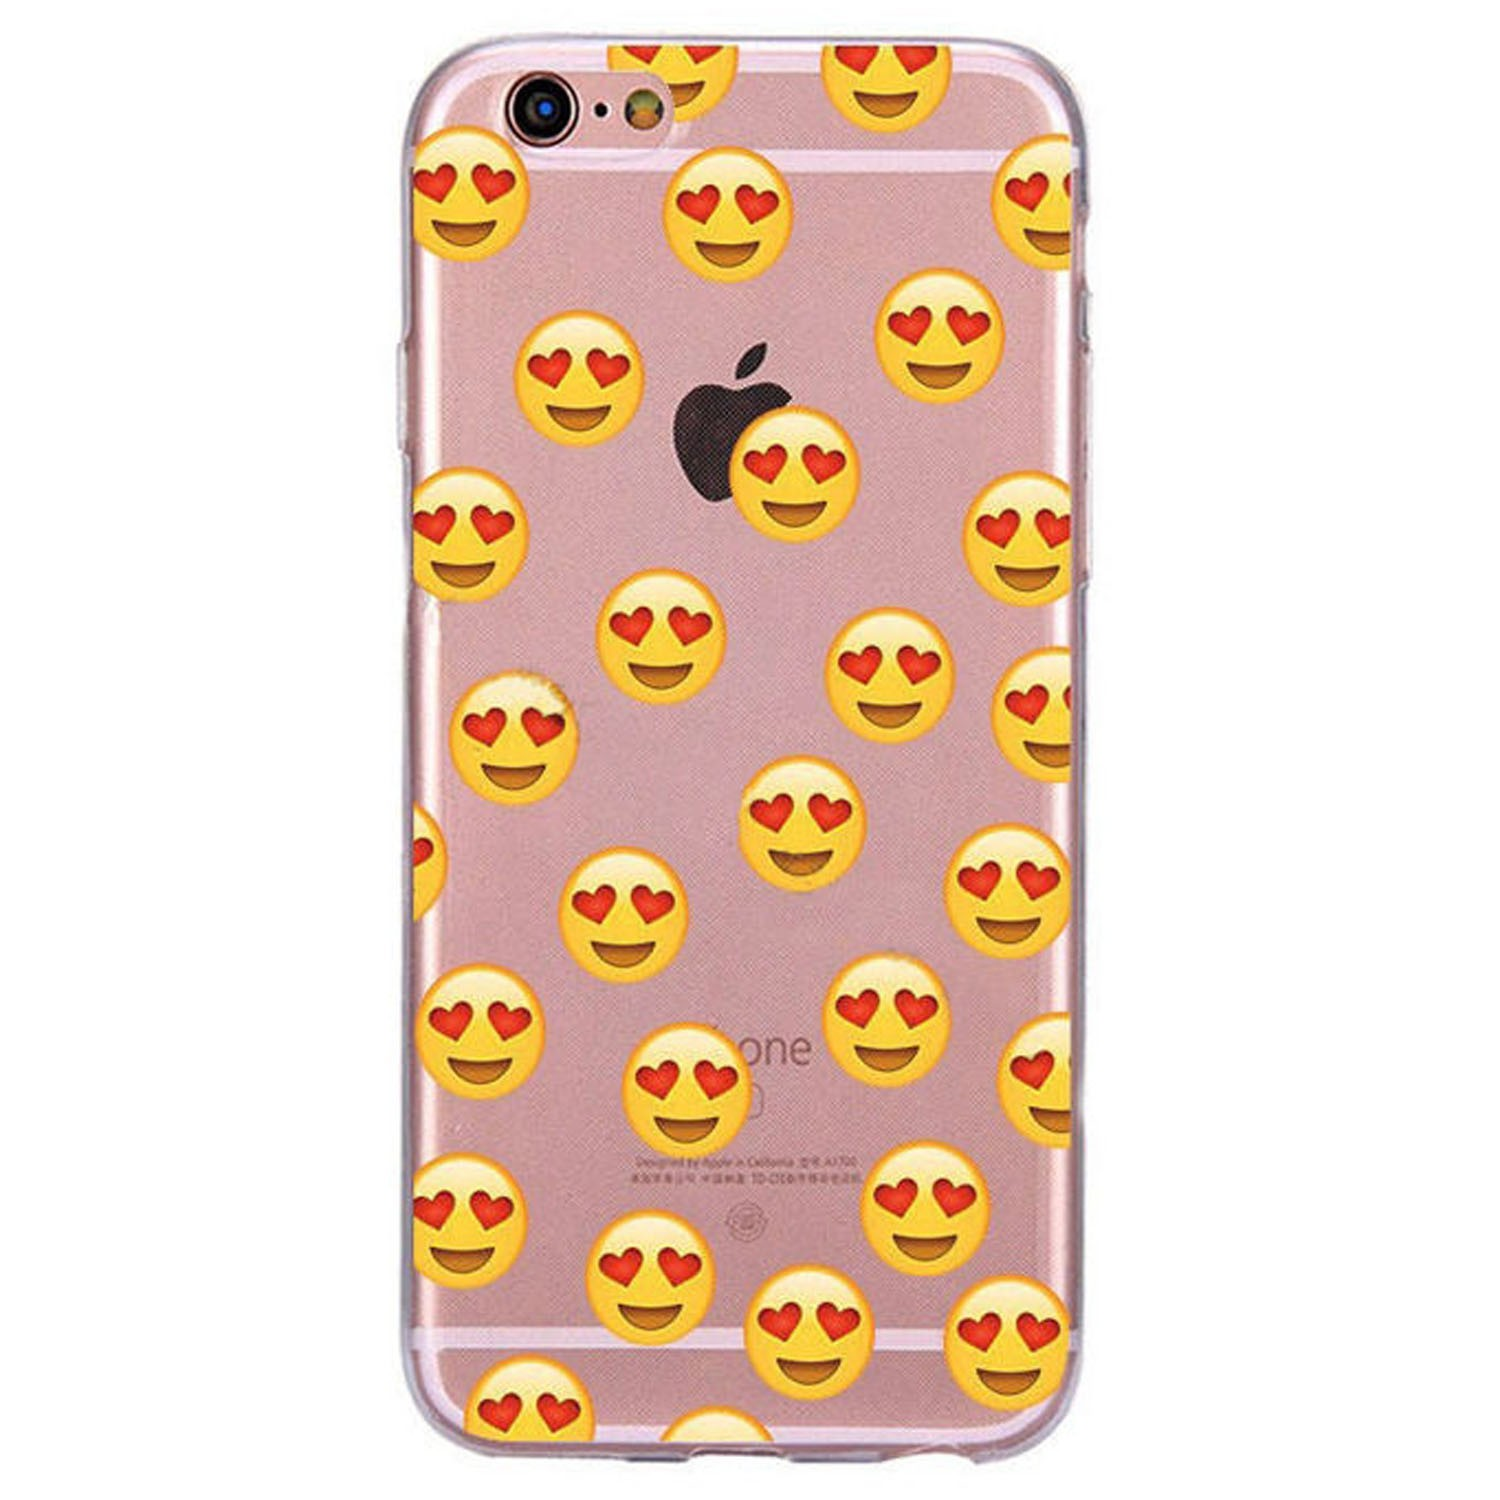 Kritzel Case Emoji Collection iPhone 6 plus / 6s plus #100